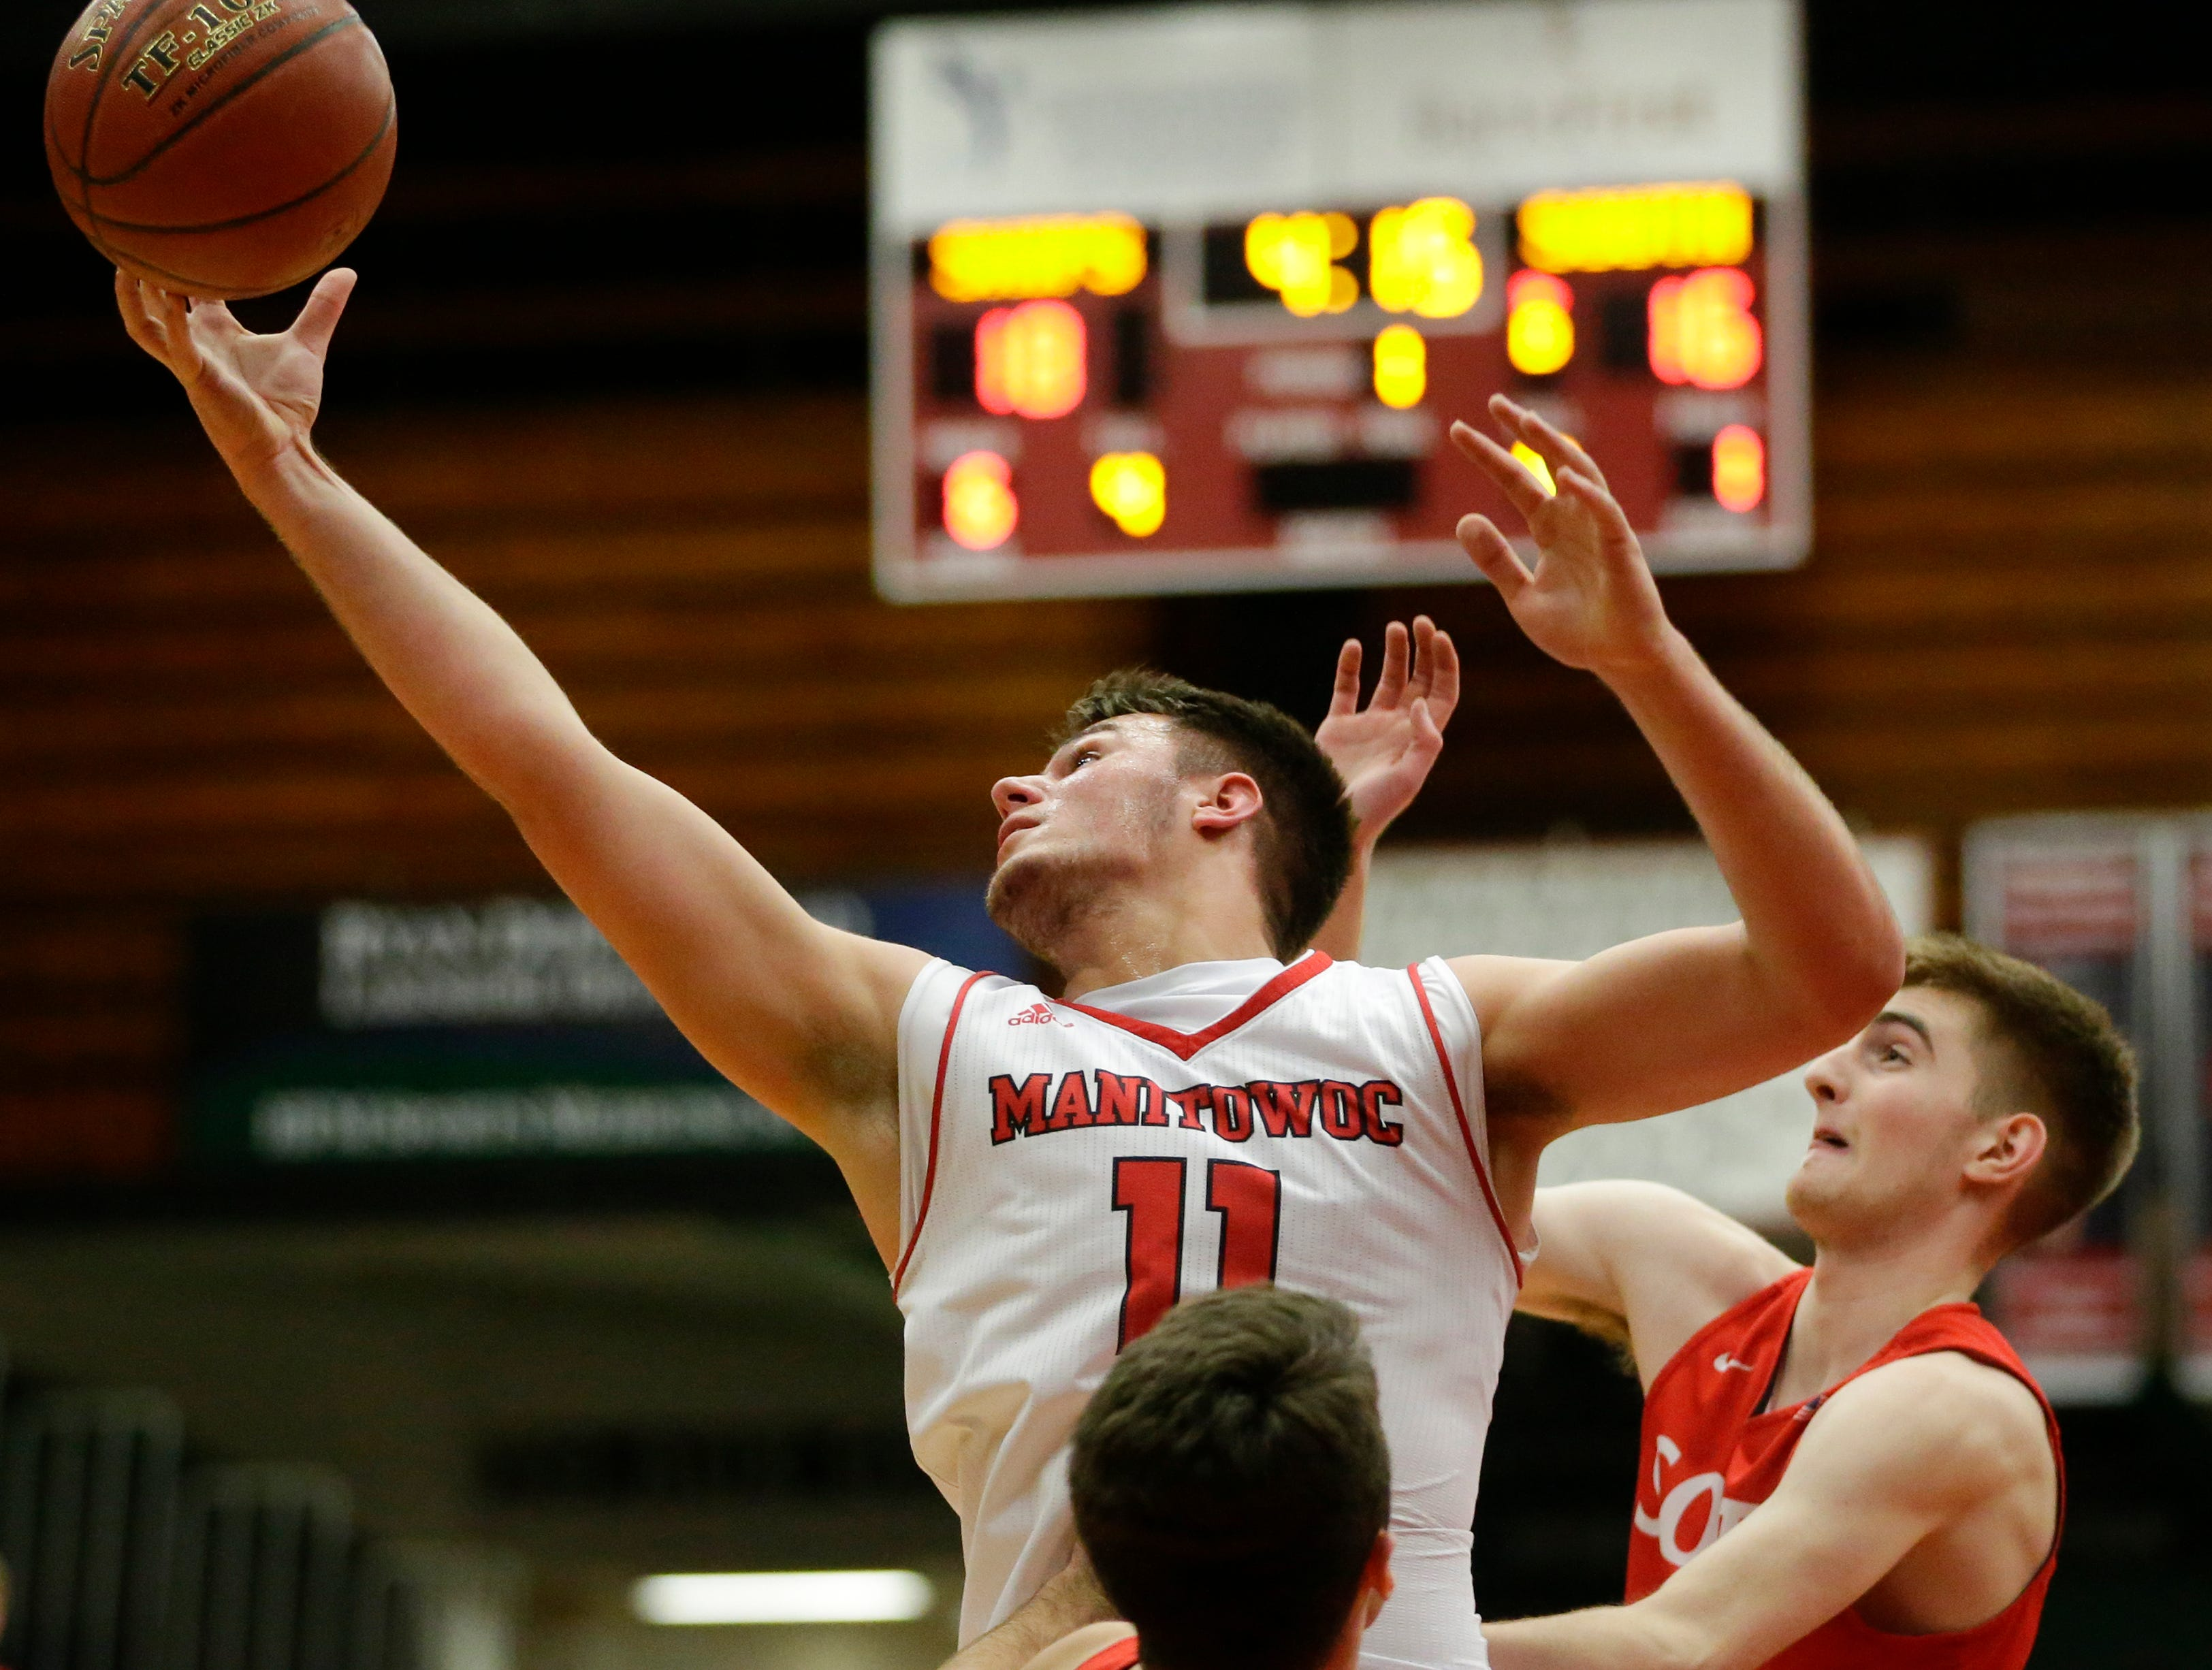 Manitowoc Lincoln's Davis Heinzen (11) reaches for a rebound against Sheboygan South at Manitowoc Lincoln High School Tuesday, February 5, 2019, in Manitowoc, Wis. Joshua Clark/USA TODAY NETWORK-Wisconsin